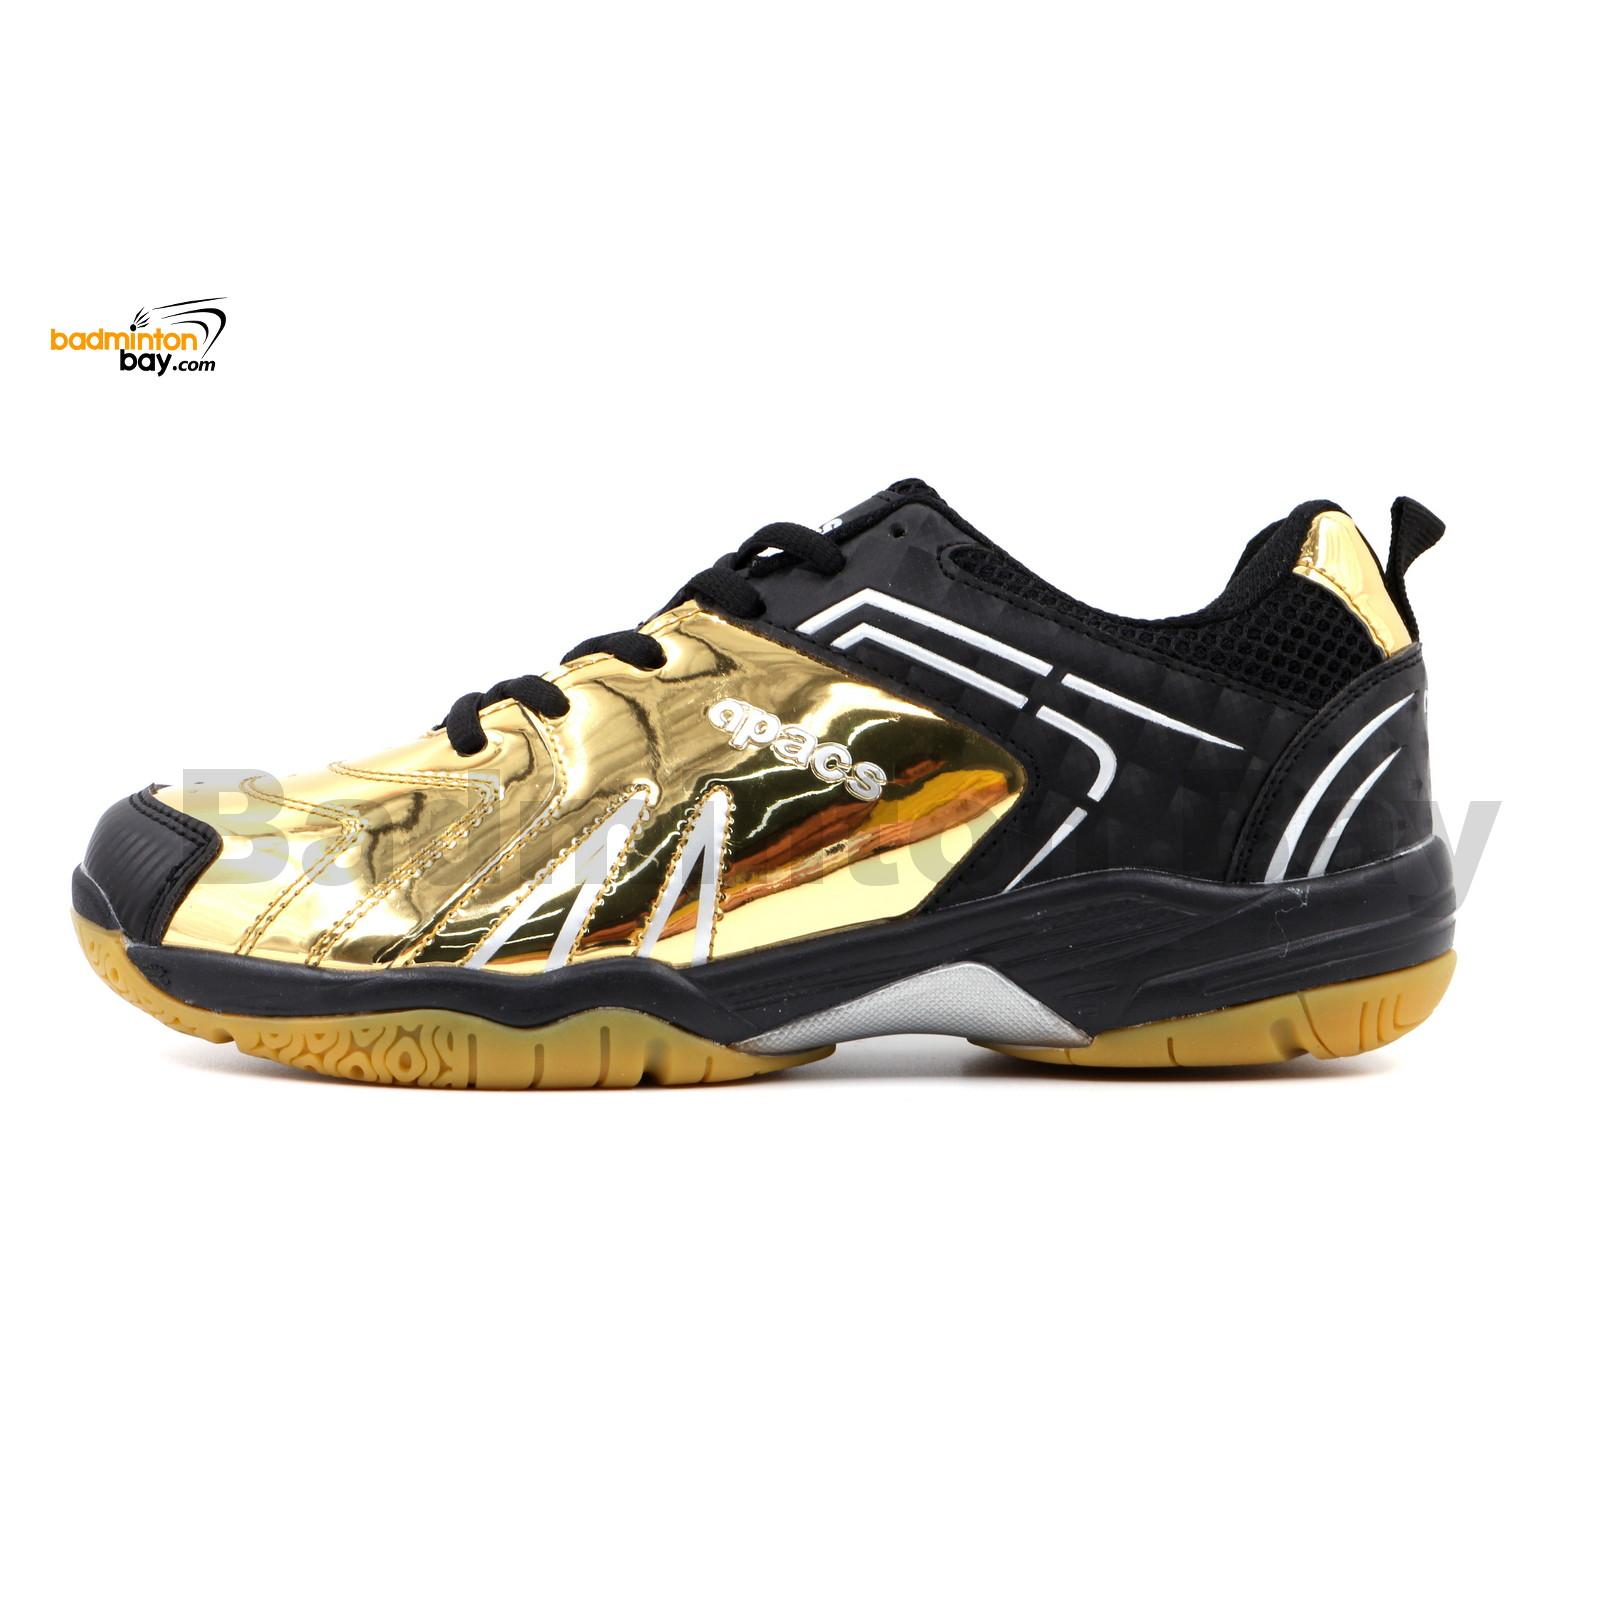 Limited Edition Apacs Cushion Power SP 605 Chrome Gold Black Badminton Shoes